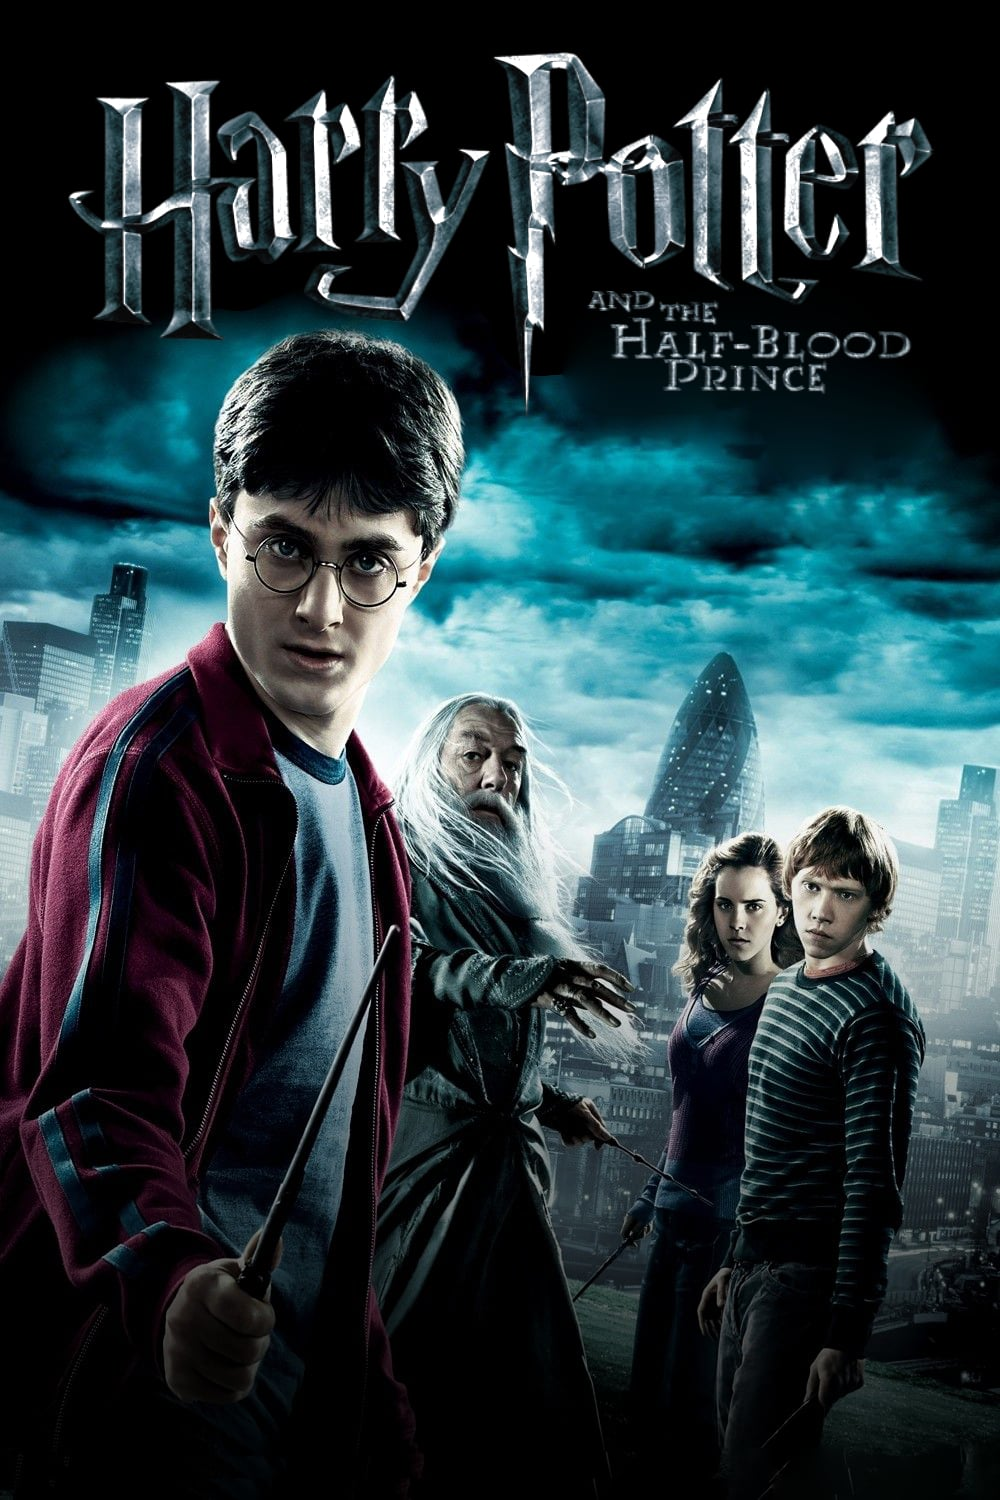 Harry Potter And The Half Blood Prince Movie Streaming Online Watch On Amazon Google Play Hungama Tata Sky Itunes